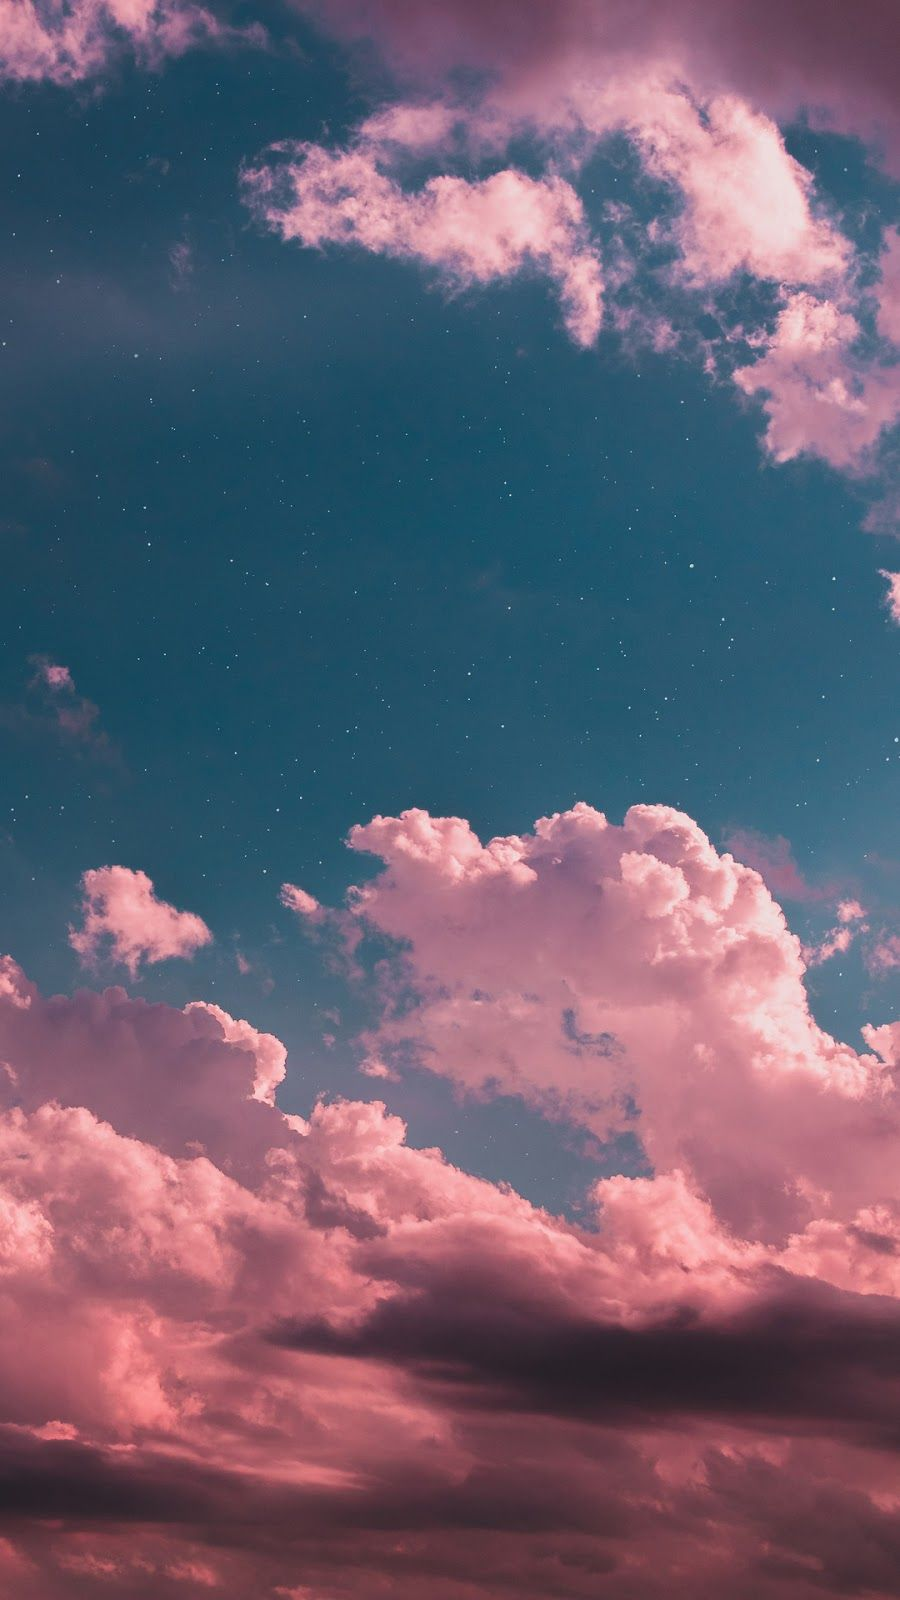 Night Sky Wallpaper Phone With Images Night Sky Wallpaper Phone Wallpapers Tumblr Pink Clouds Wallpaper